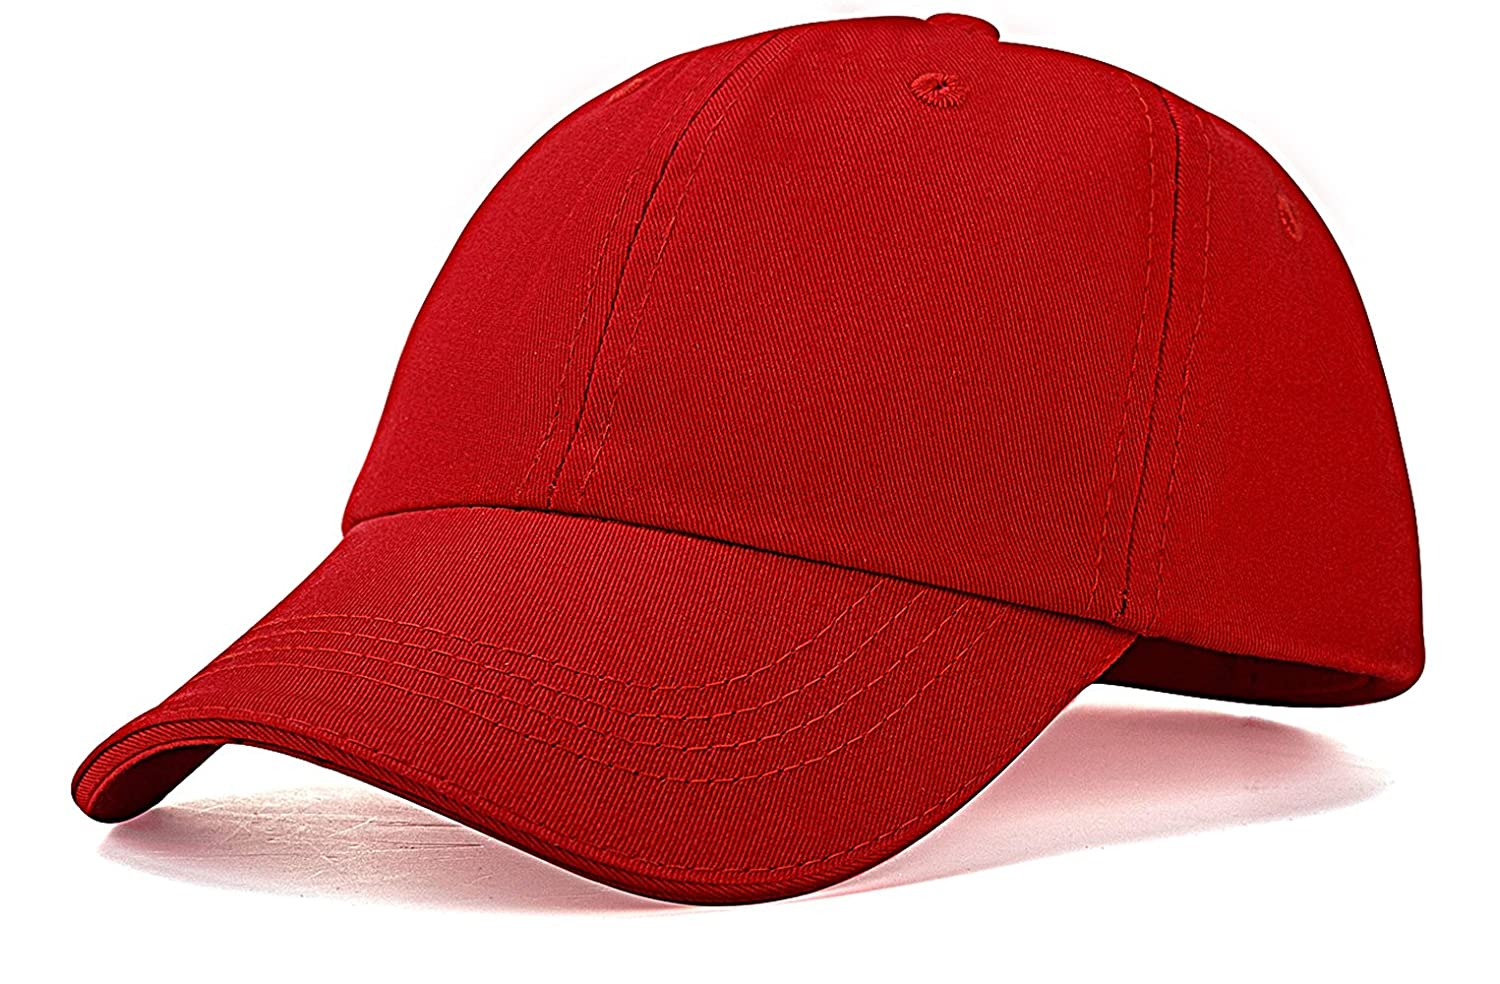 IZUS Unisex Kids Baseball Cap Hat Plain Washed Low Profile Cotton